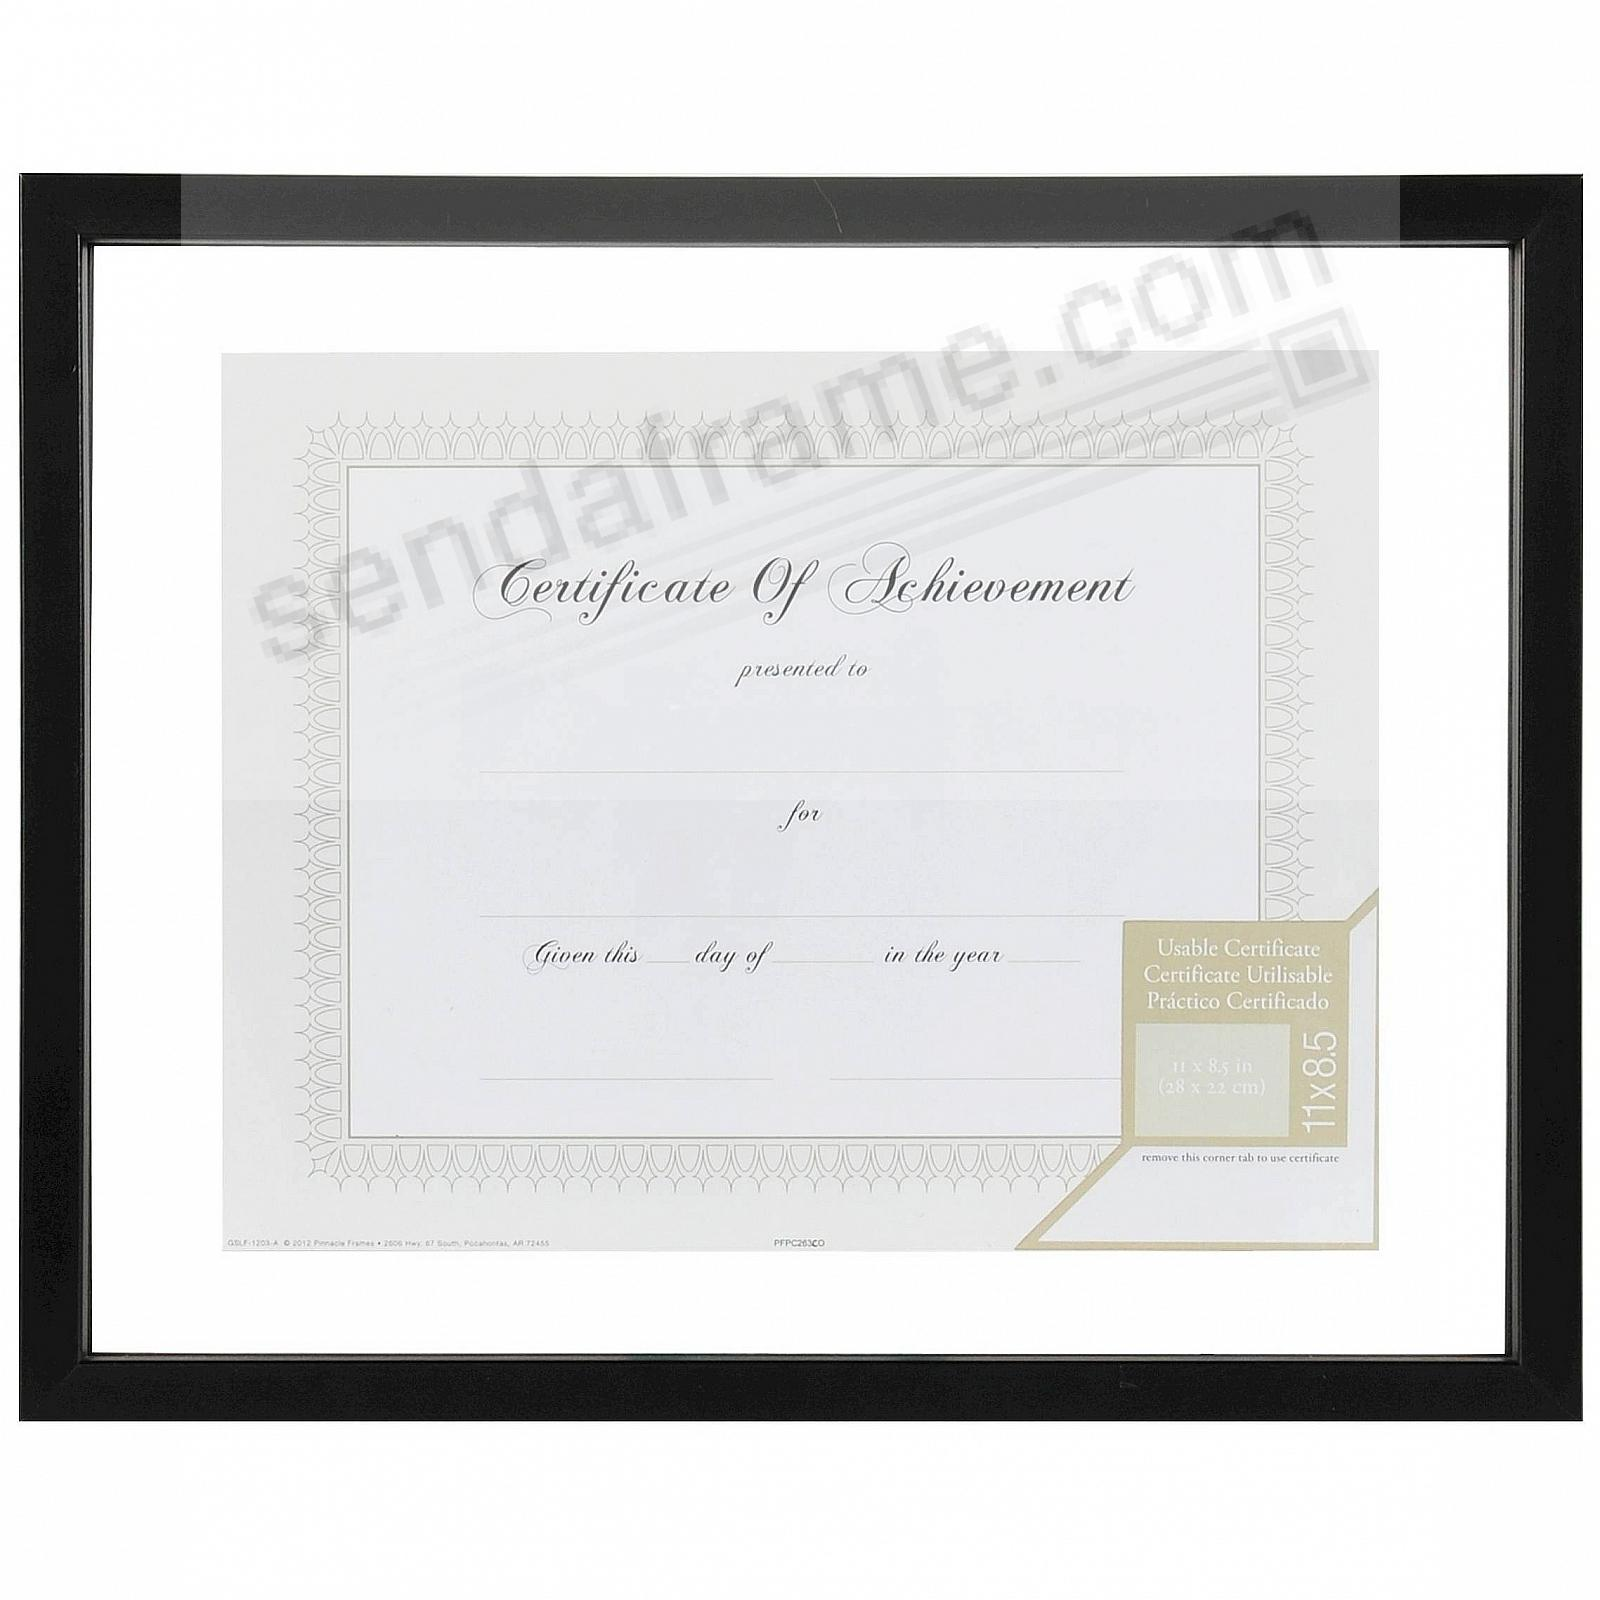 BLACK GLASS FLOAT 11x14/8½x11 frame by Gallery Solutions®